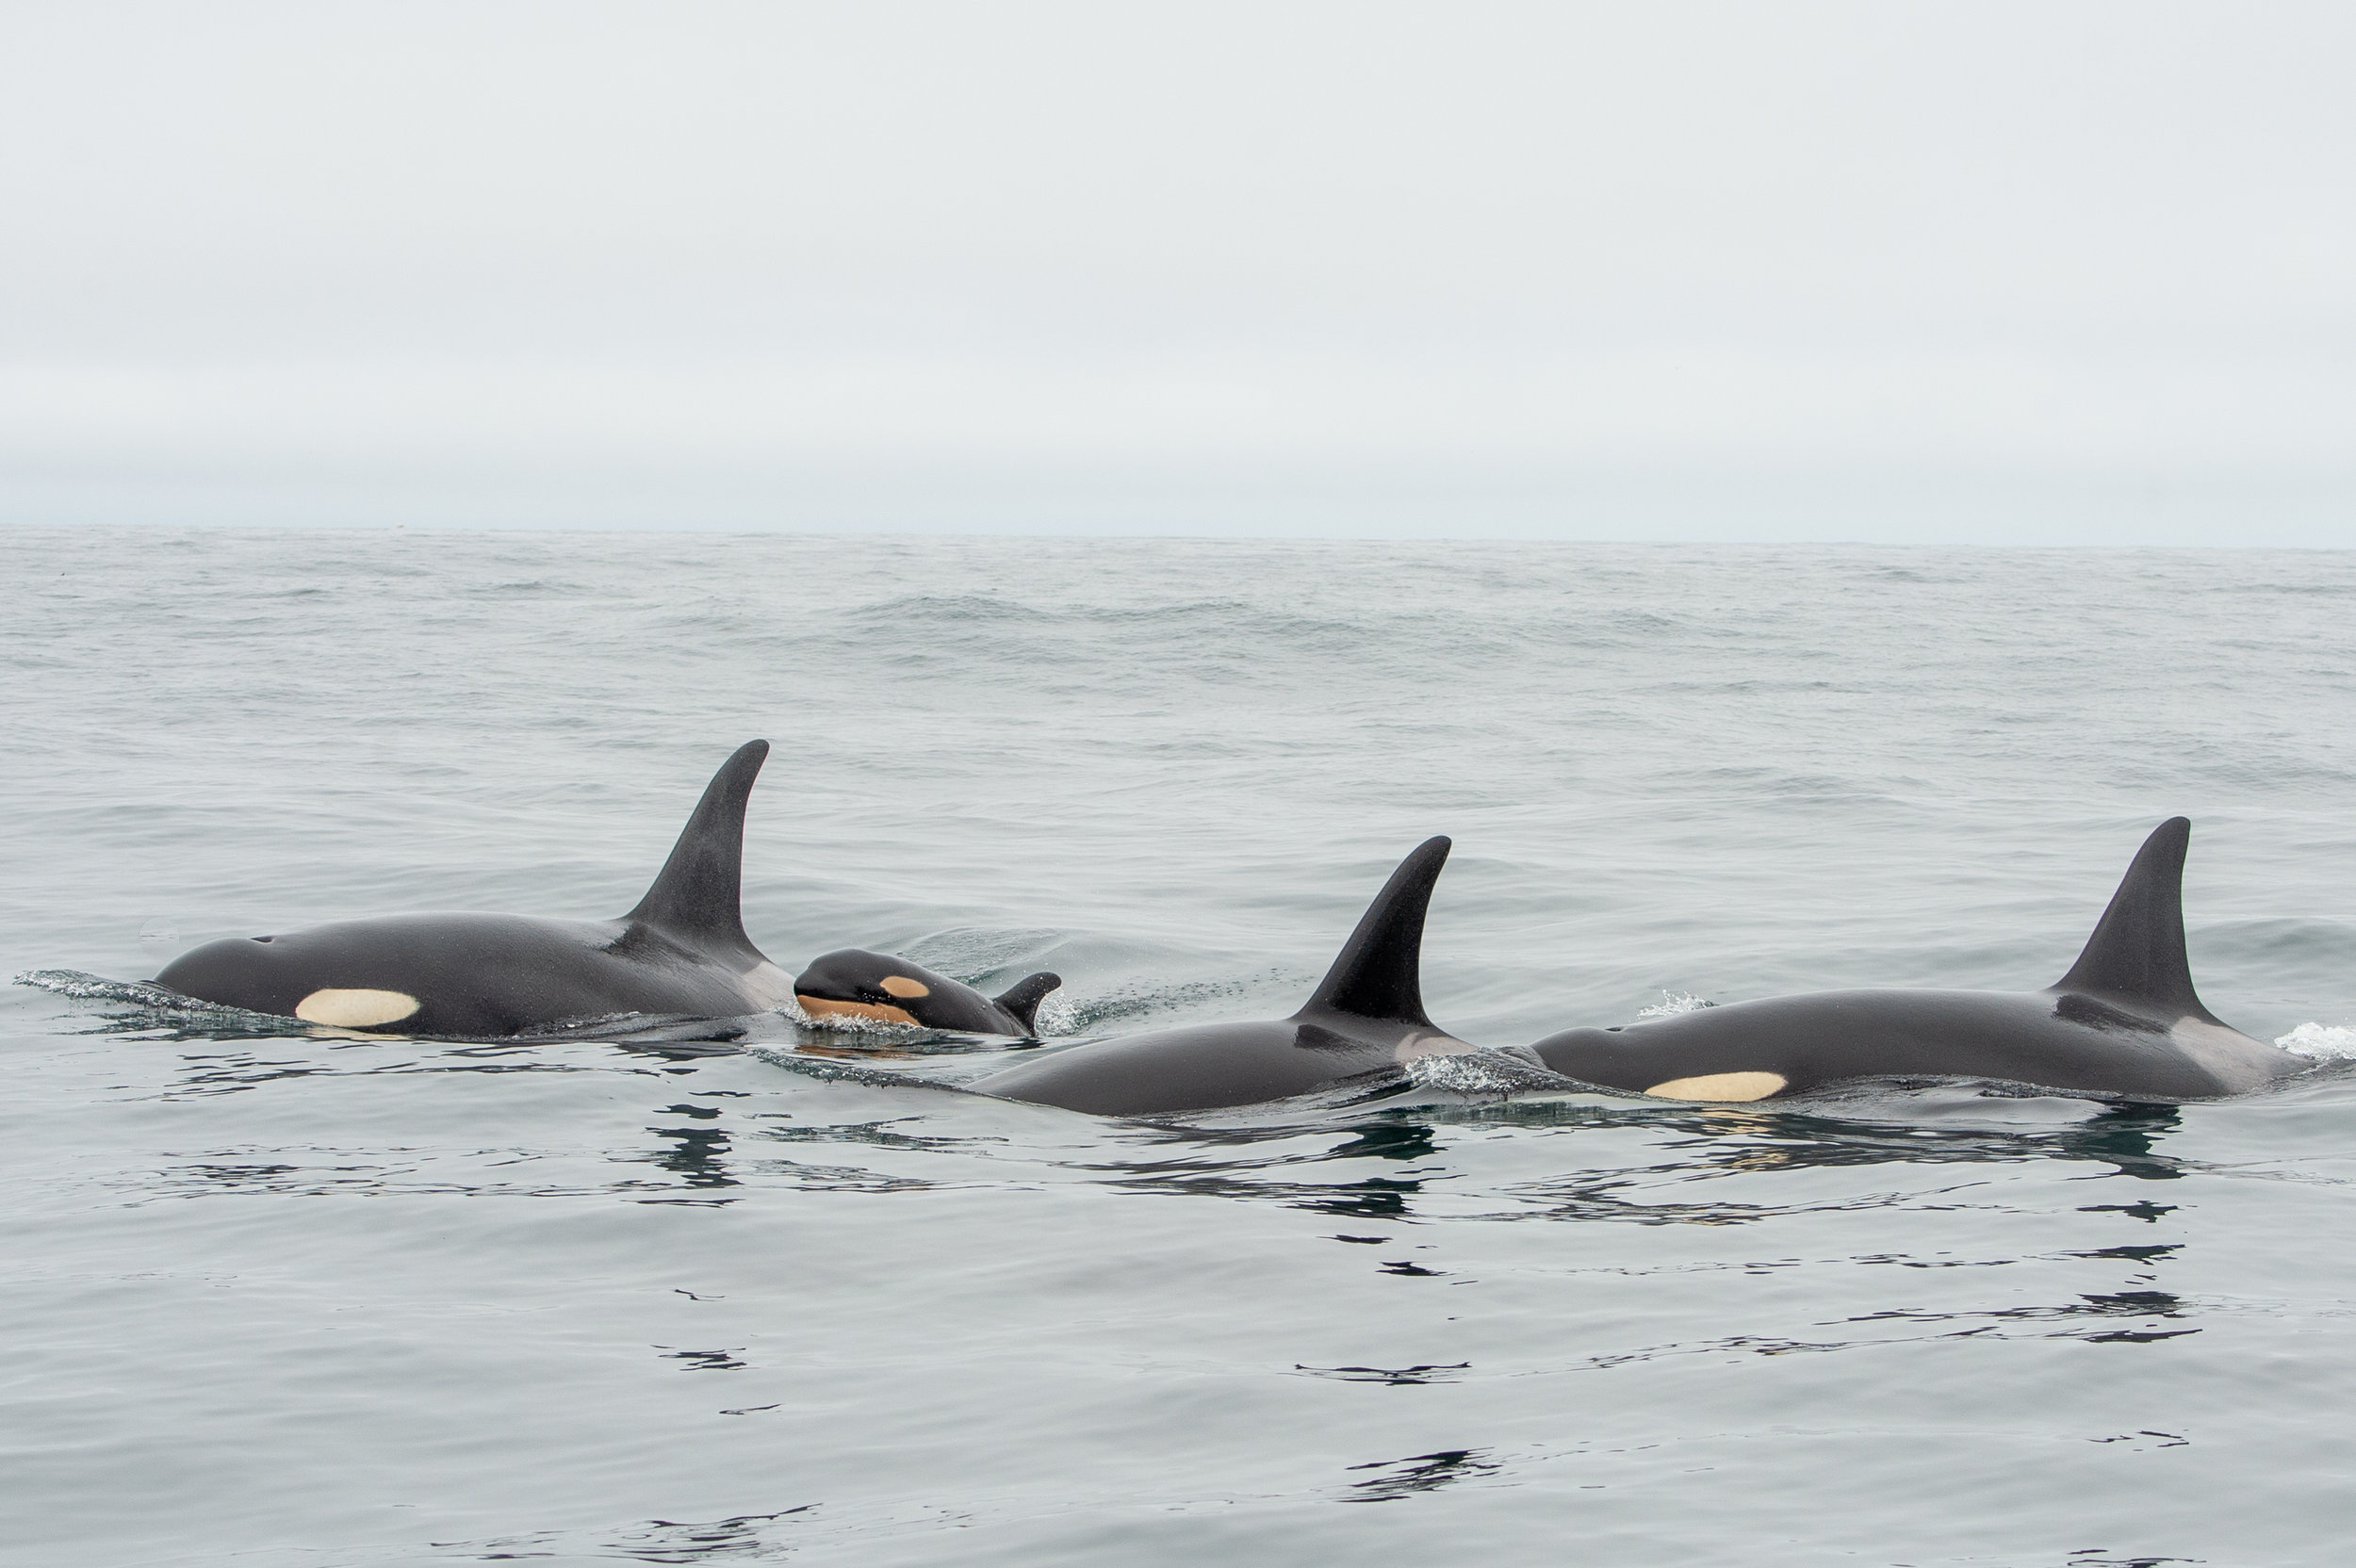 J19, J41 and new calf